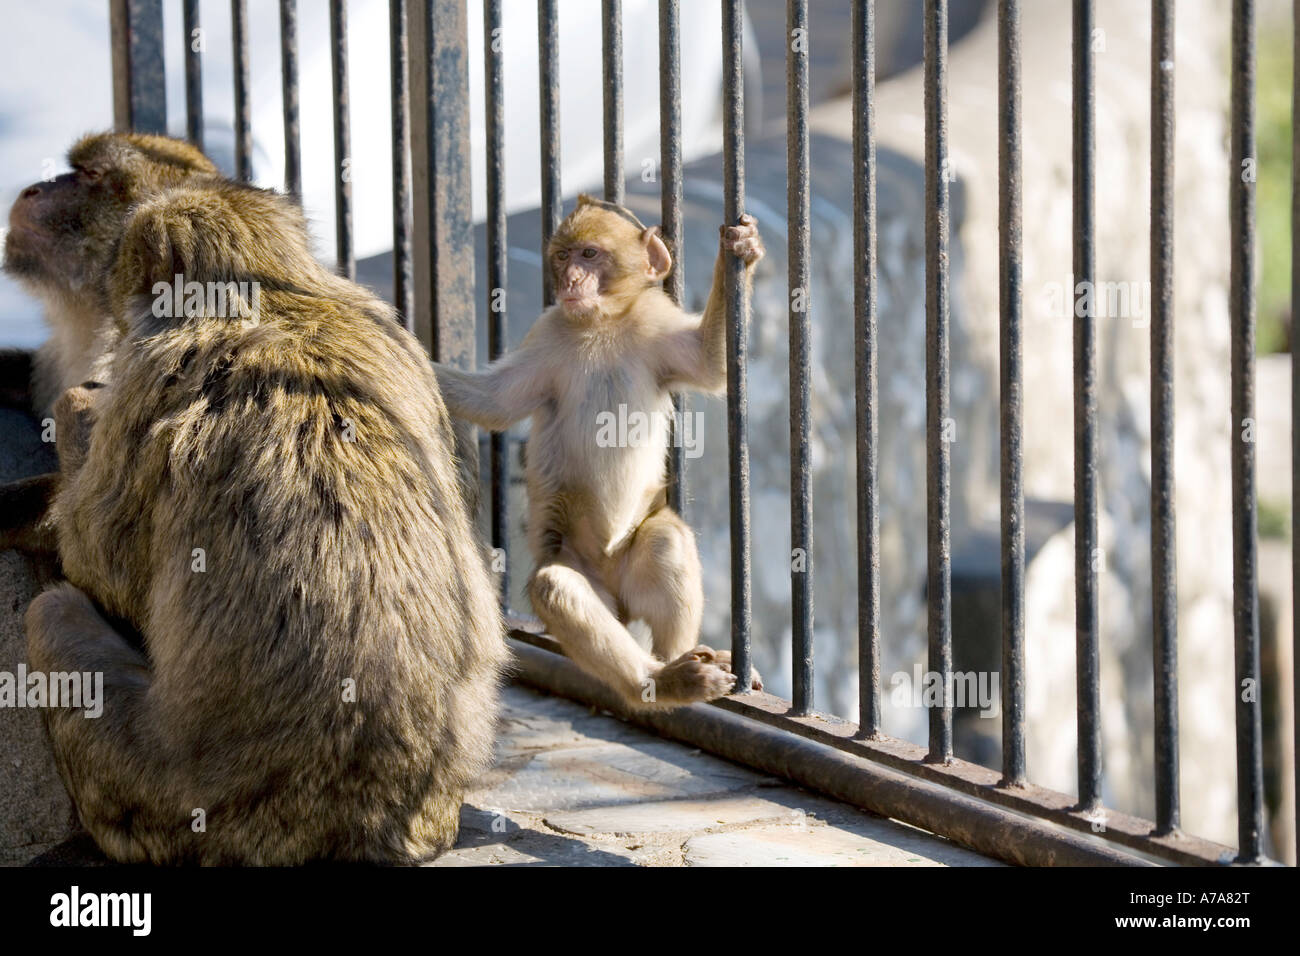 Immature Gibraltar Ape swinging on railings - Stock Image